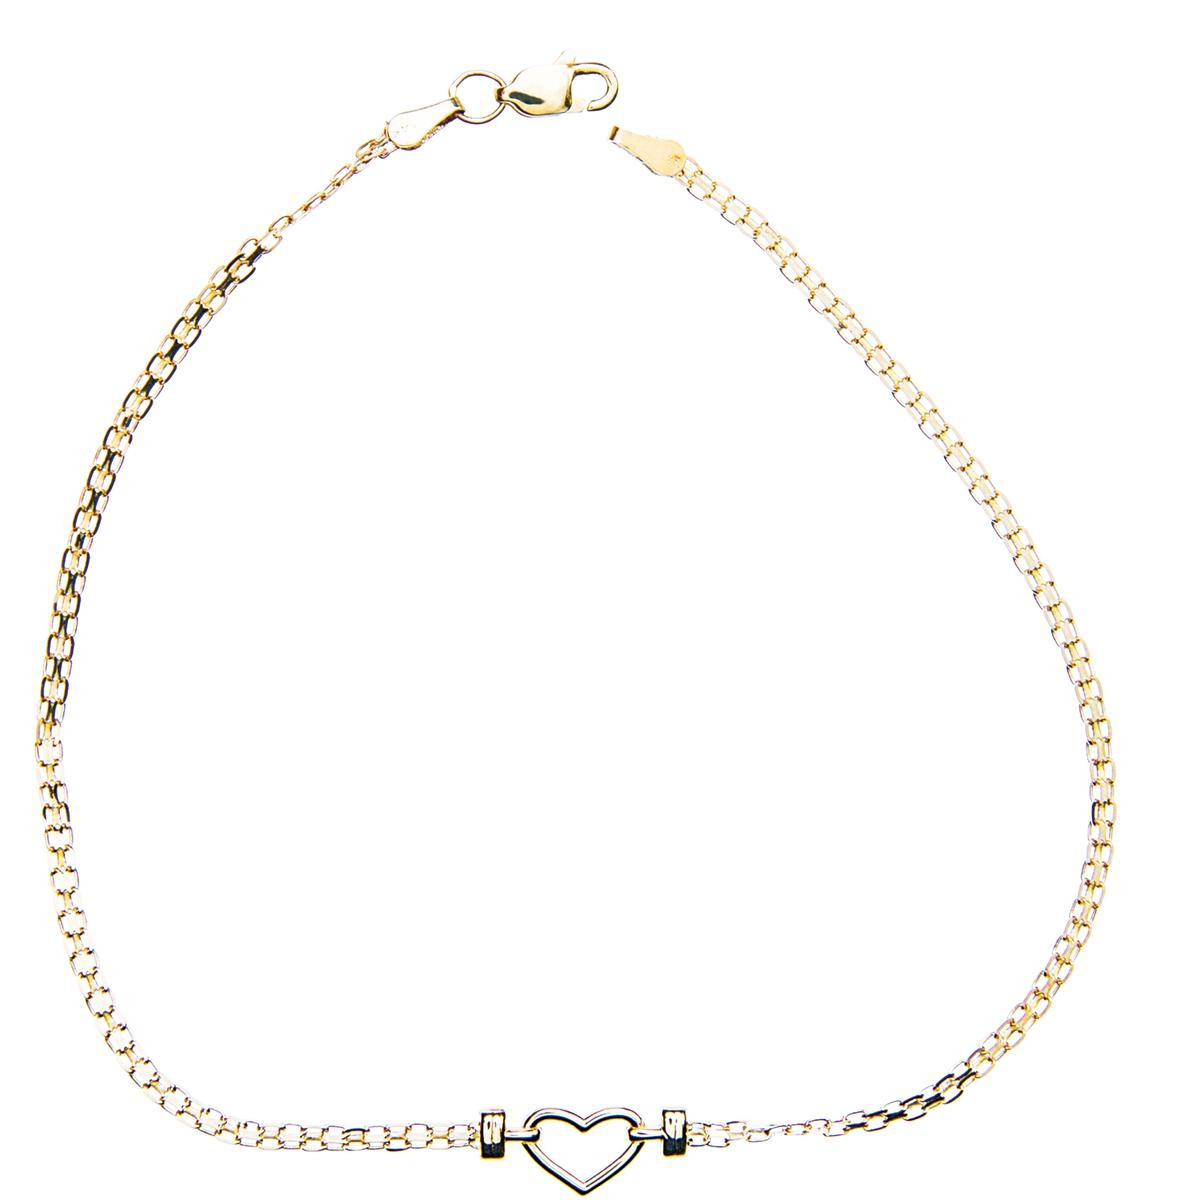 New 14 Karat Yellow Gold Heart Anklet